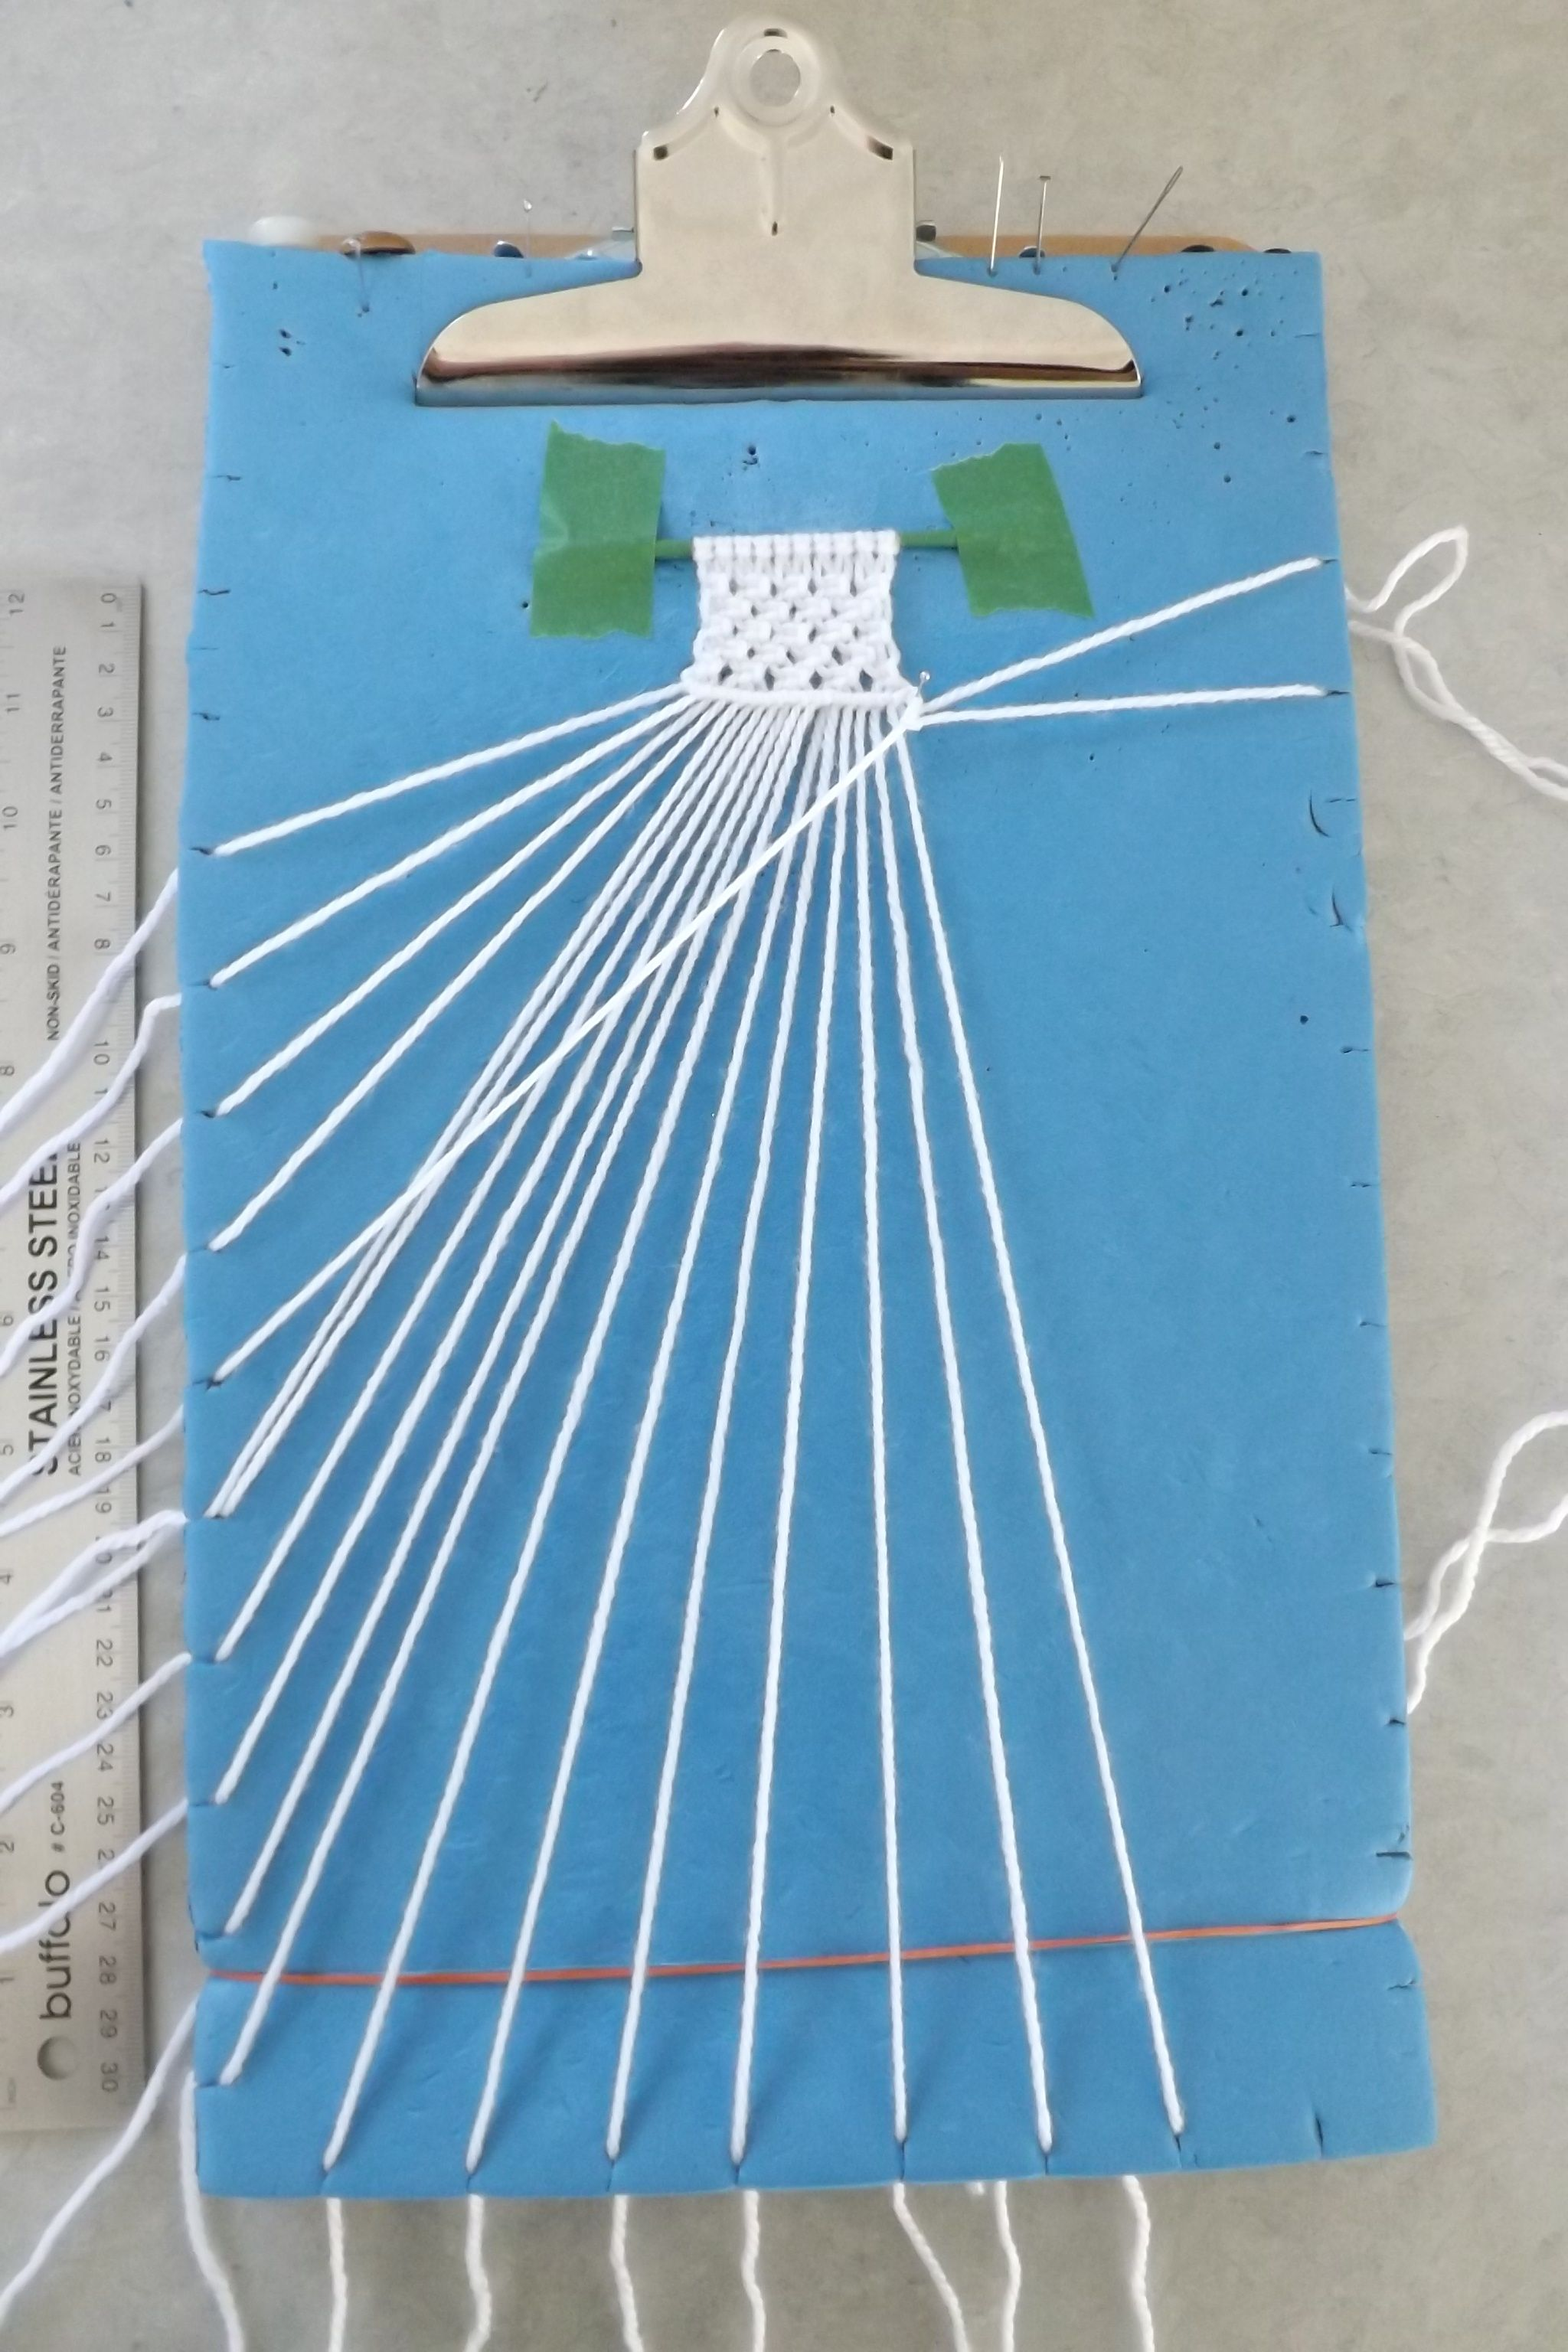 Macrame  How To Tie Basic Knots & Make Chains, Braids & Cording Patterns